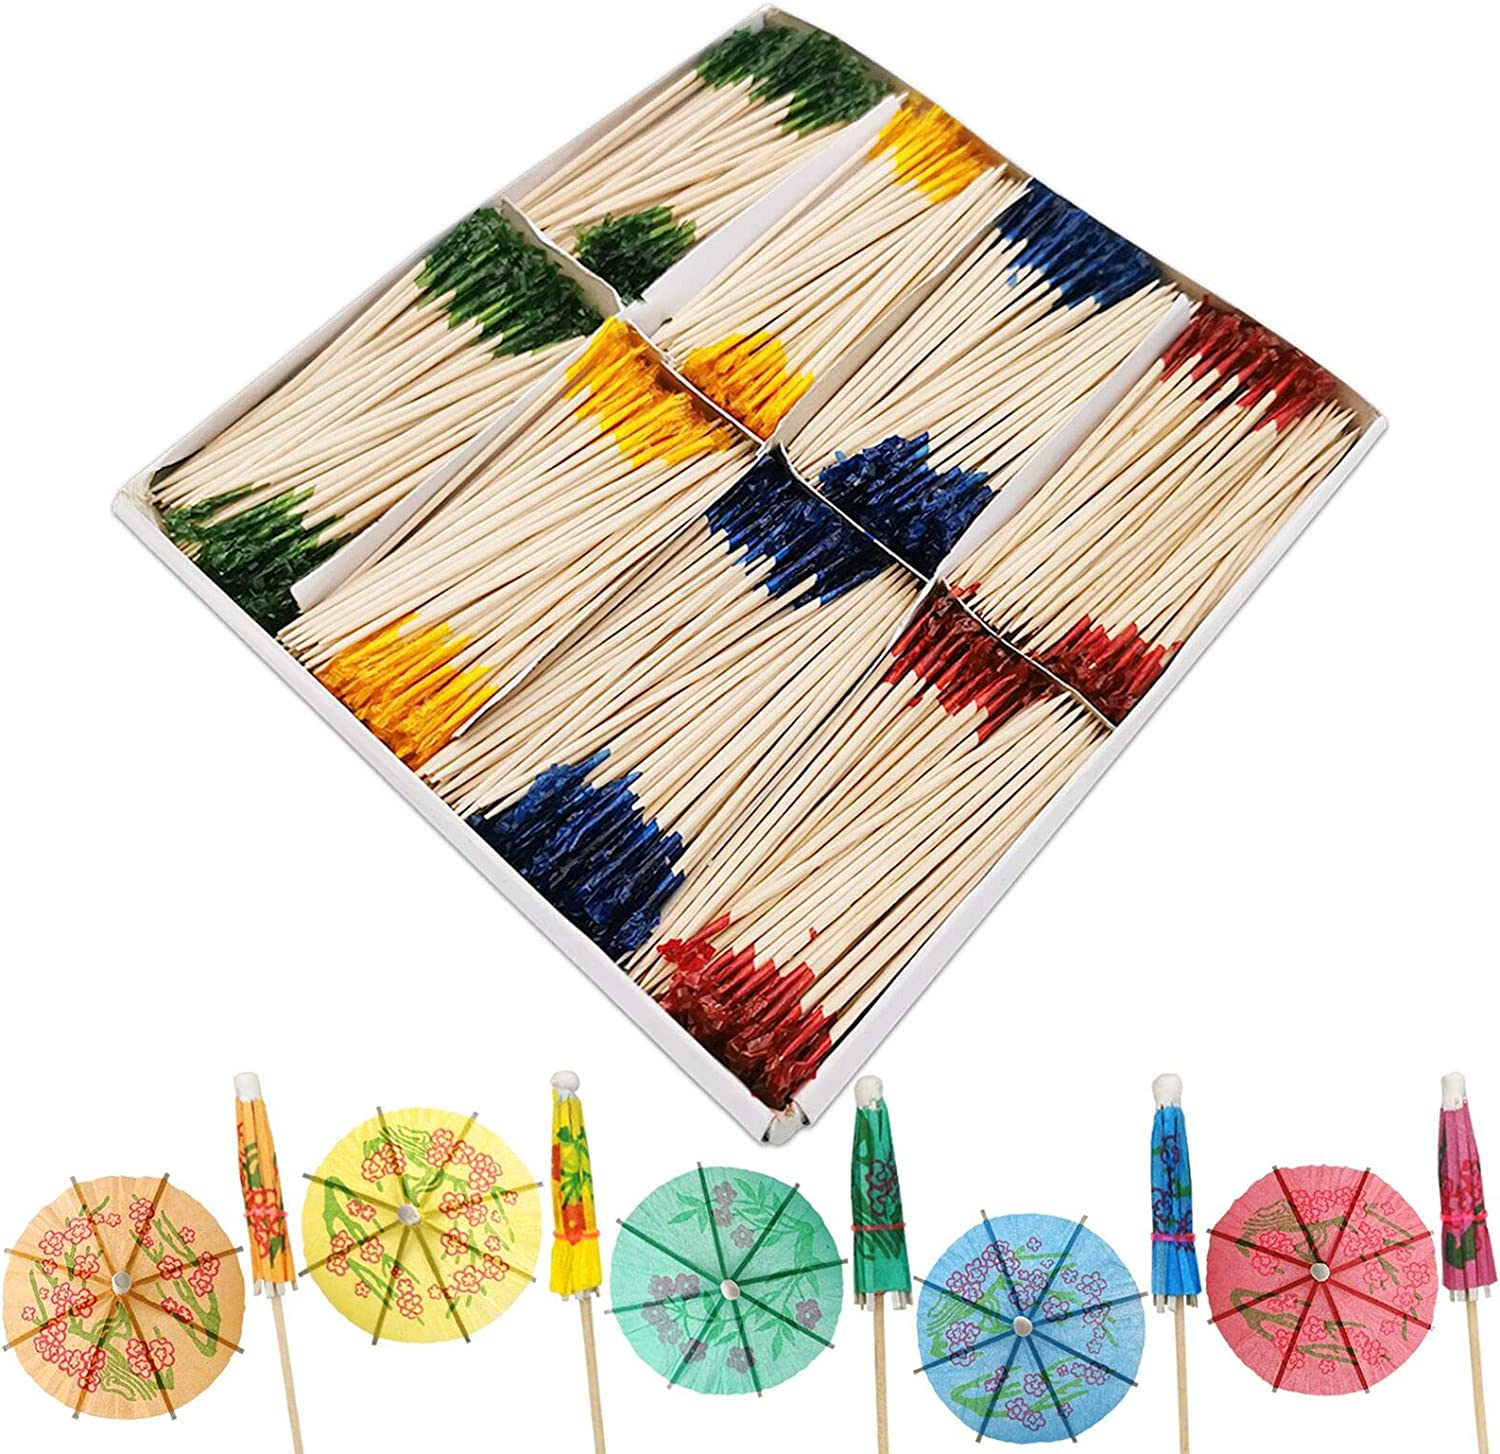 BLUE TOP Frill Picks Toothpicks 4 Inch Pack 1000,with 5 Umbrella Picks.